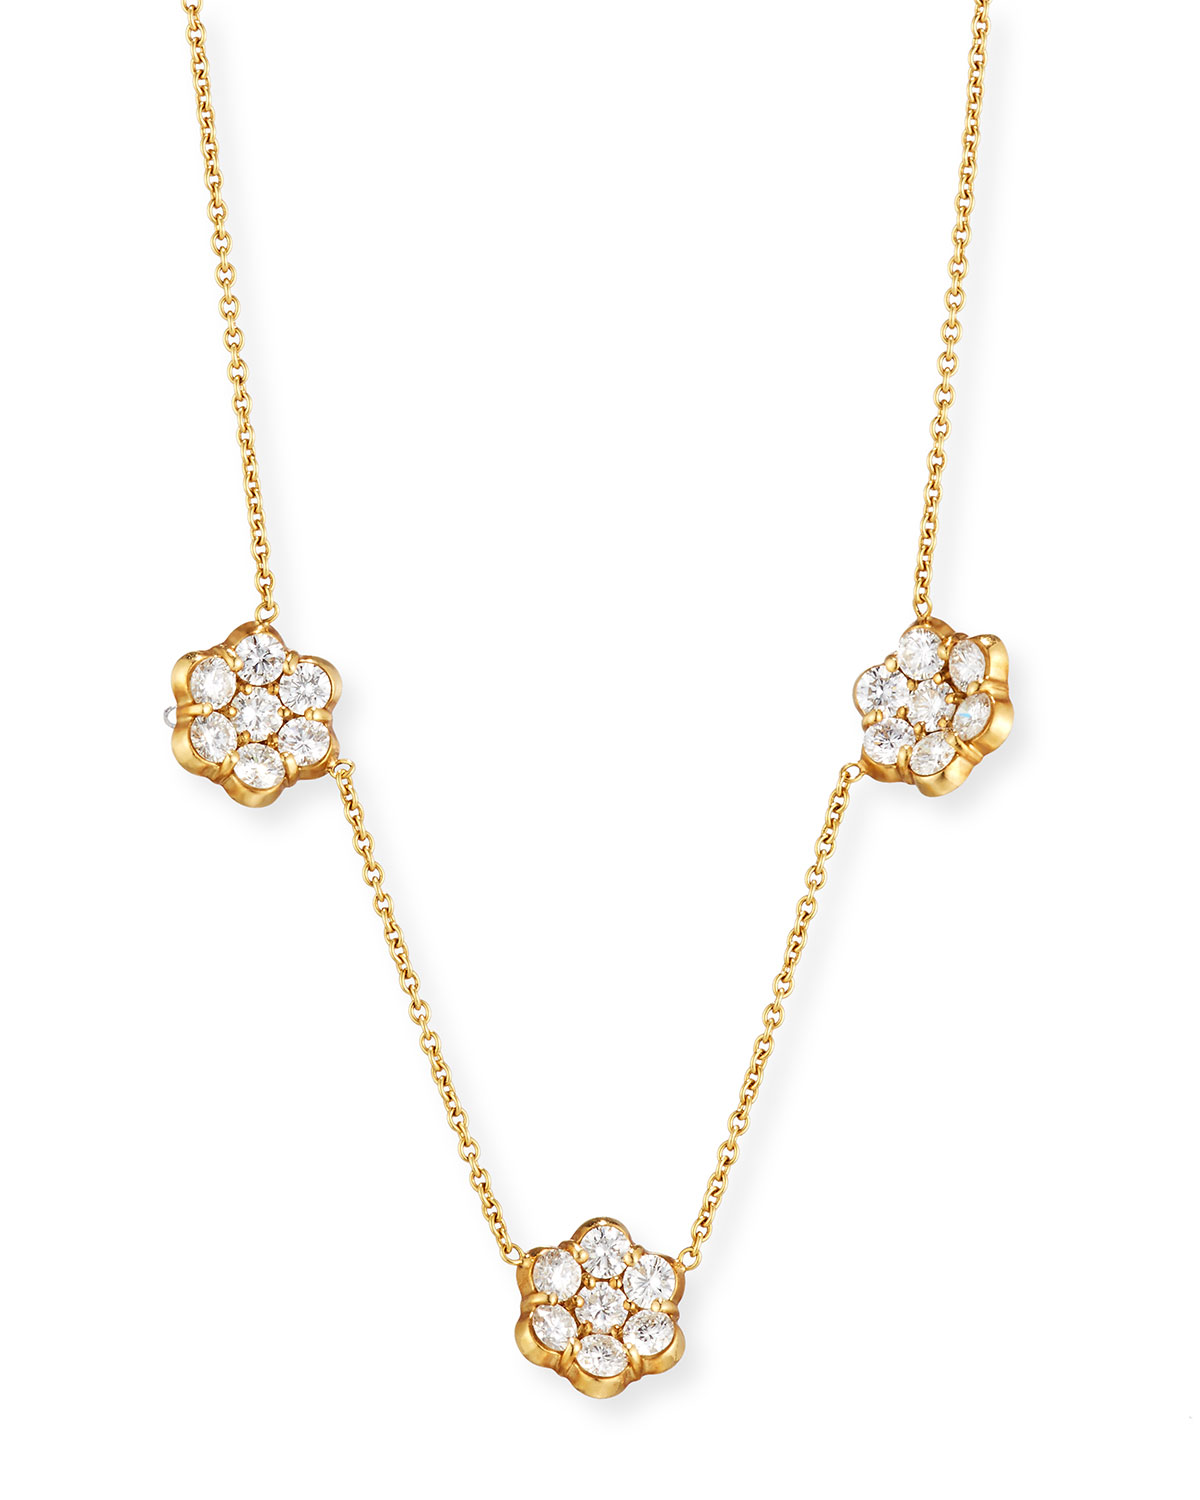 BAYCO 18K Gold & Diamond Floral Station Necklace